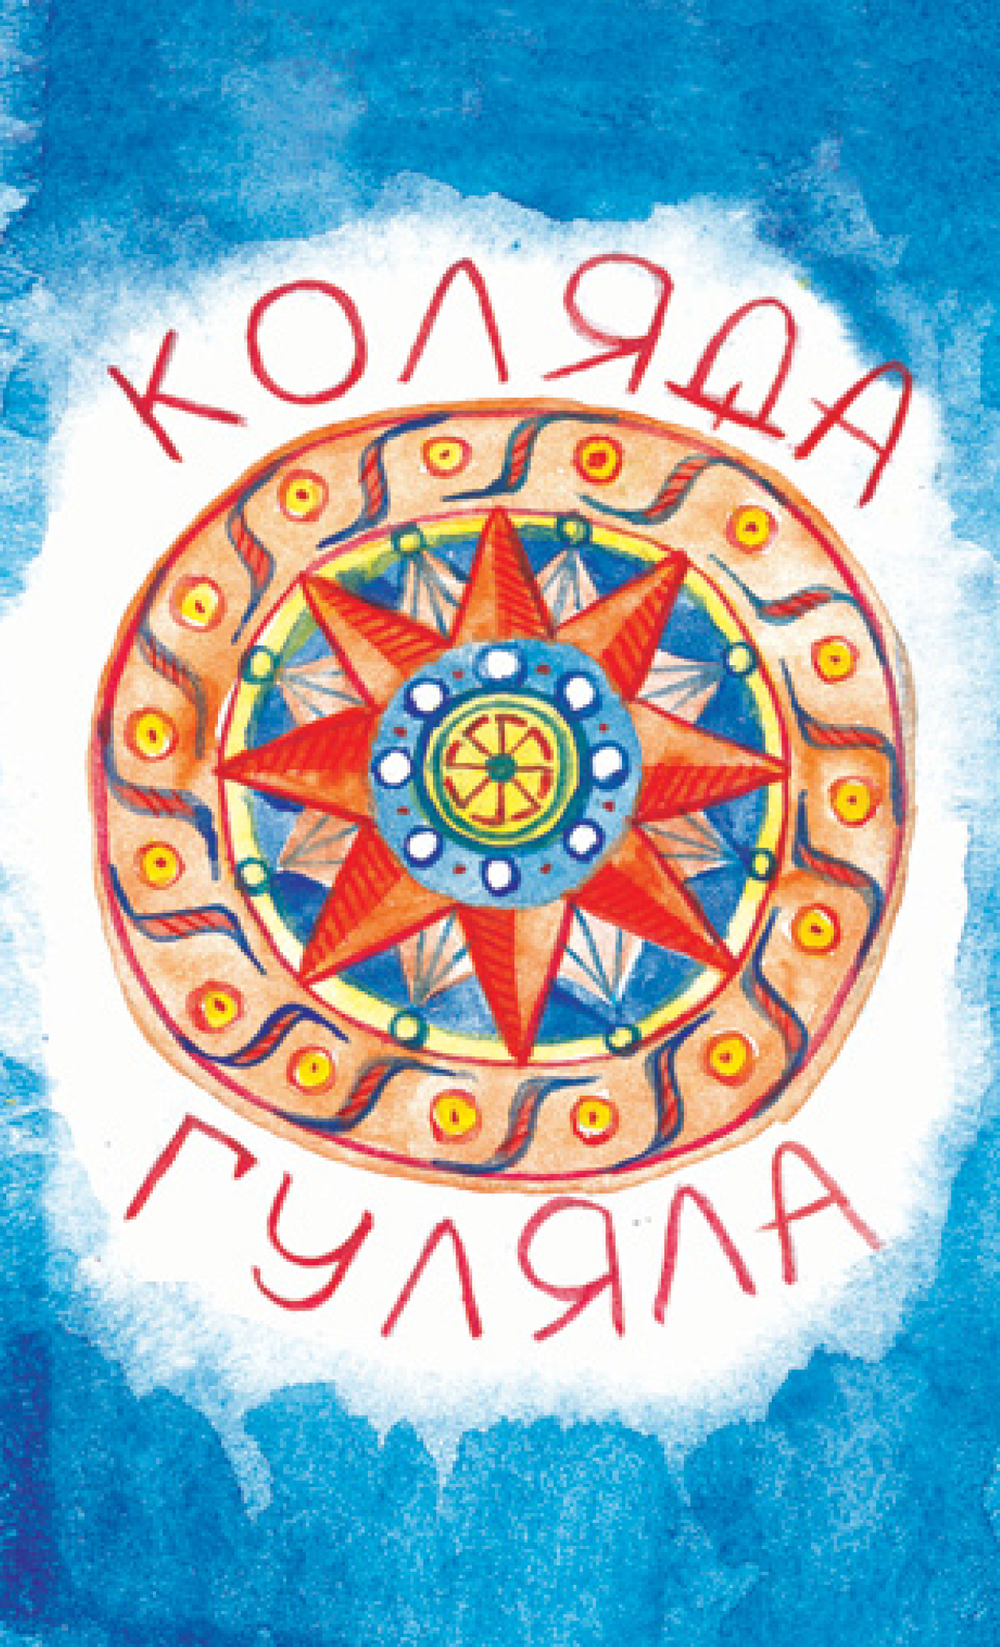 KOLIADA HULIALA - In 2015, Kosa Kolektiv with the Ukrainian Credit Union put together a Ukrainian carolling book with the original Ukrainian text and transliteration of each song. Click on the button for a free .PDF download.